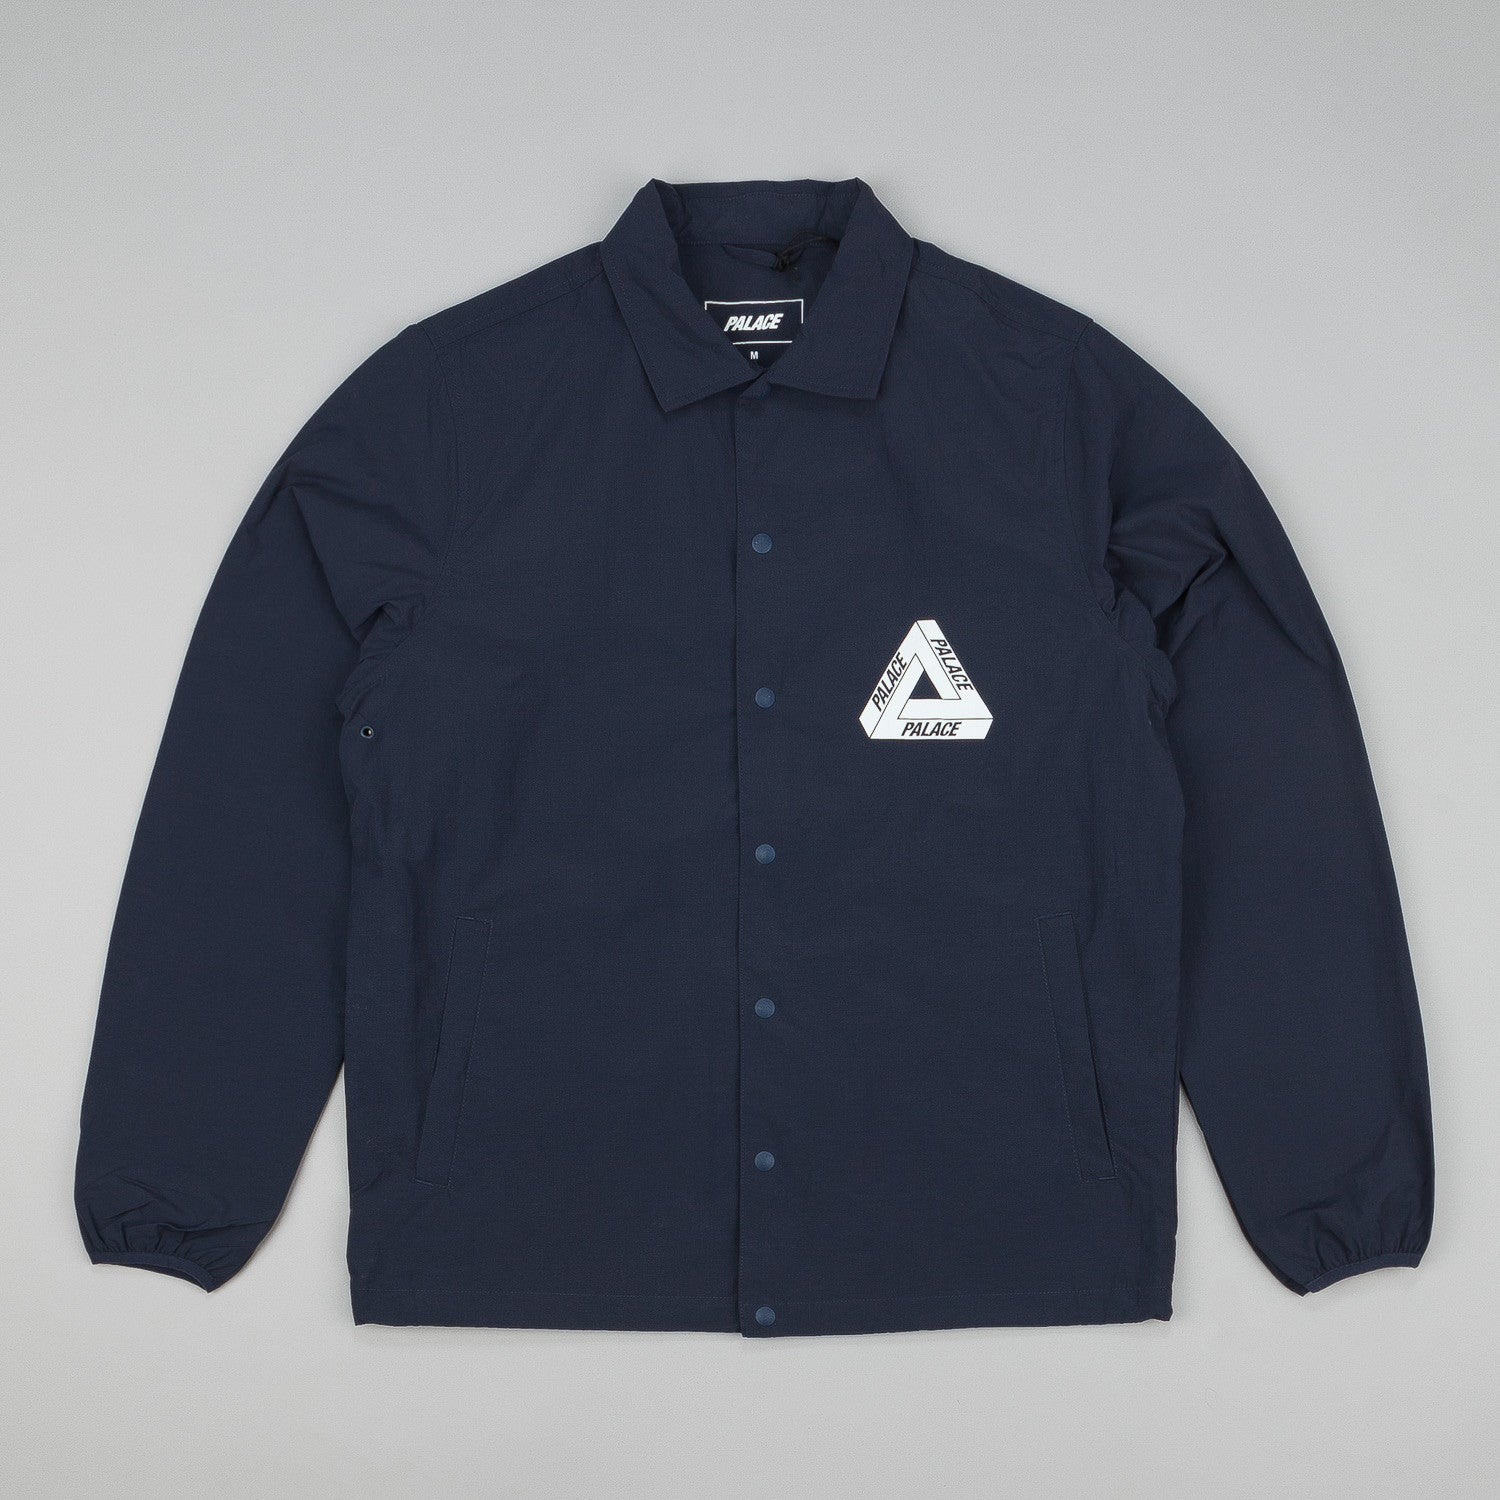 Palace P8TCJ001 Tech Coach Jacket